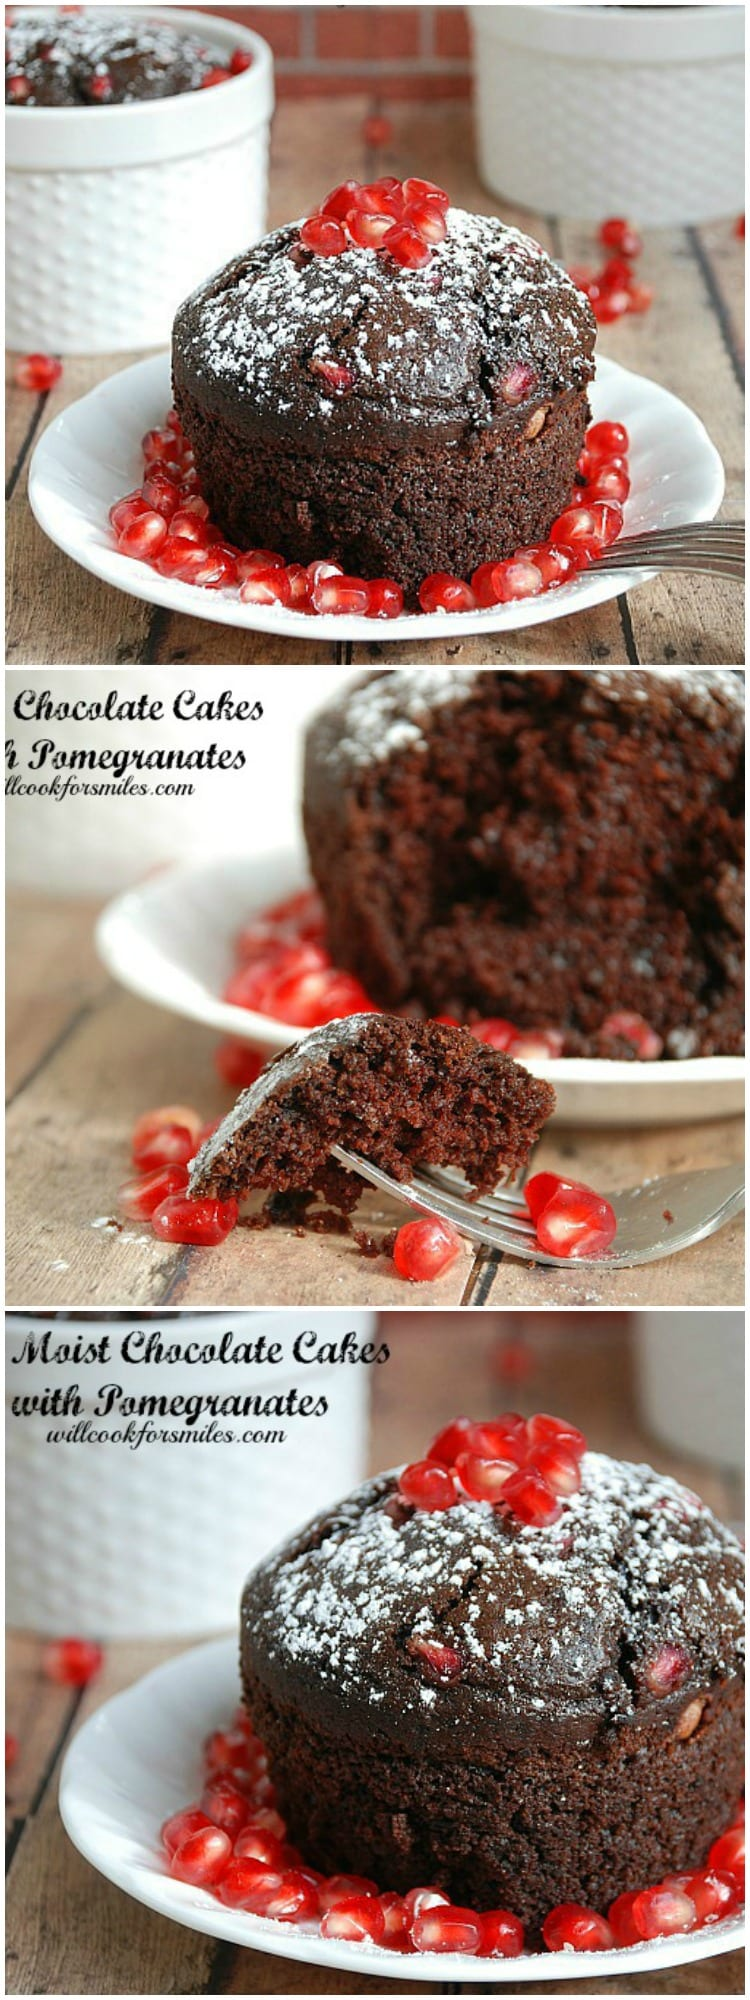 Moist Chocolate Cakes with Pomegranates | from willcookforsmiles.com